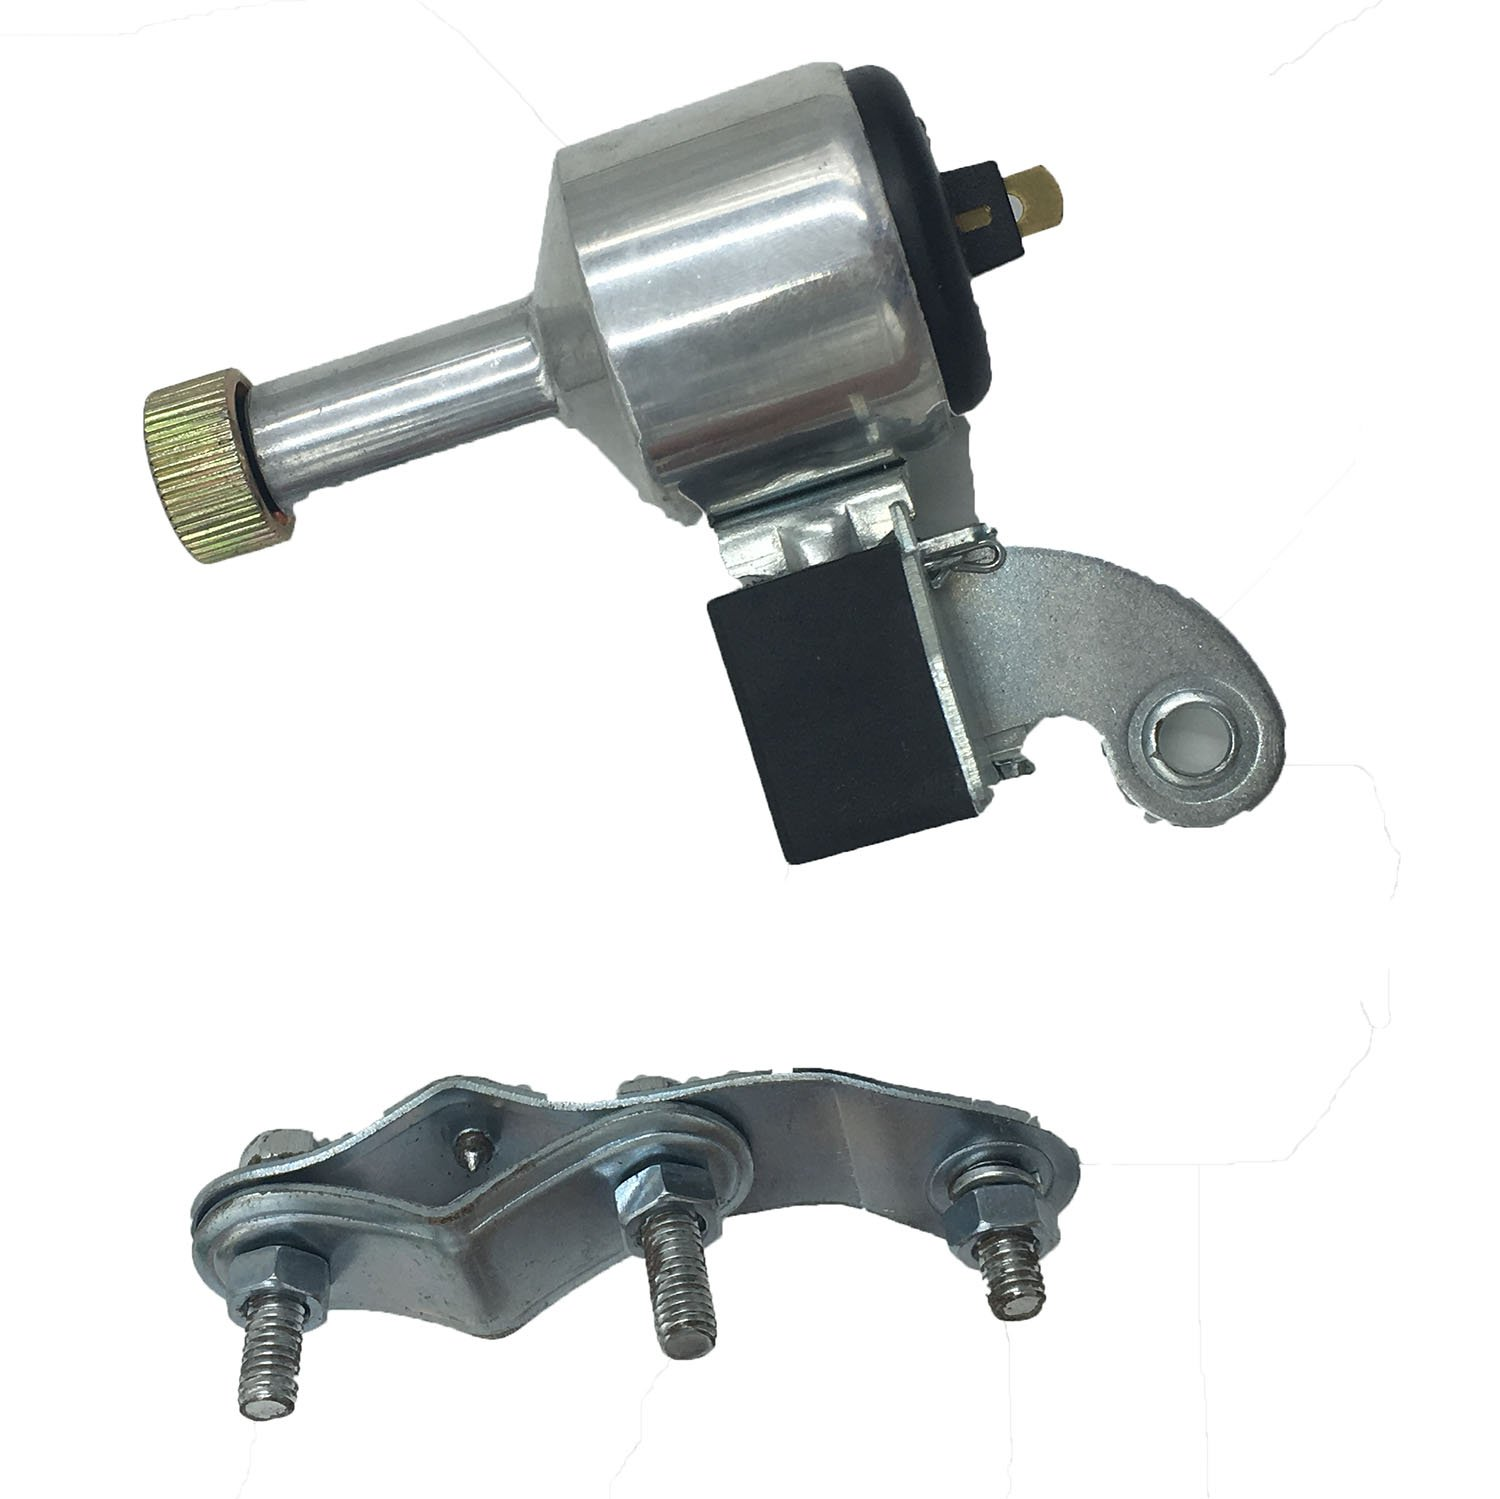 Bicycle Motorized Dynamo Generator 6V 3W Aluminum AC(Alternating Current) Powered For Headlight Taillight Through Rubbing